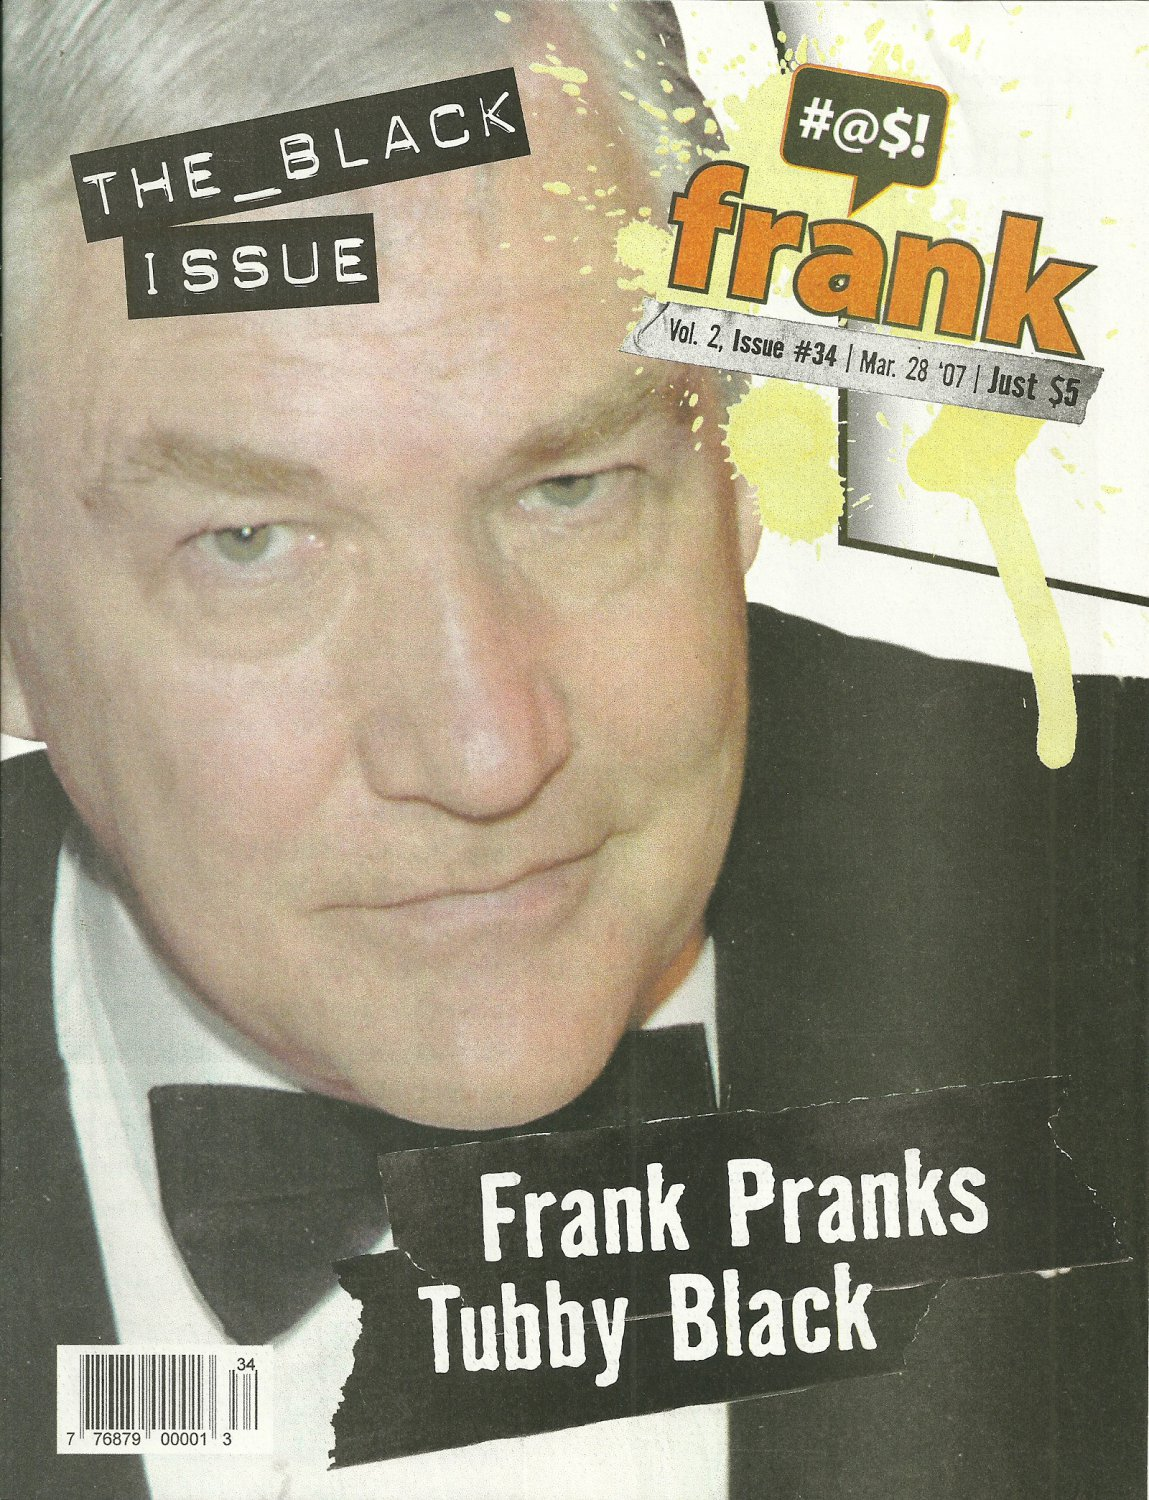 FRANK CANADIAN SATIRICAL MAGAZINE Volume 2 Issue 34 March 28, 2007 CONRAD BLACK